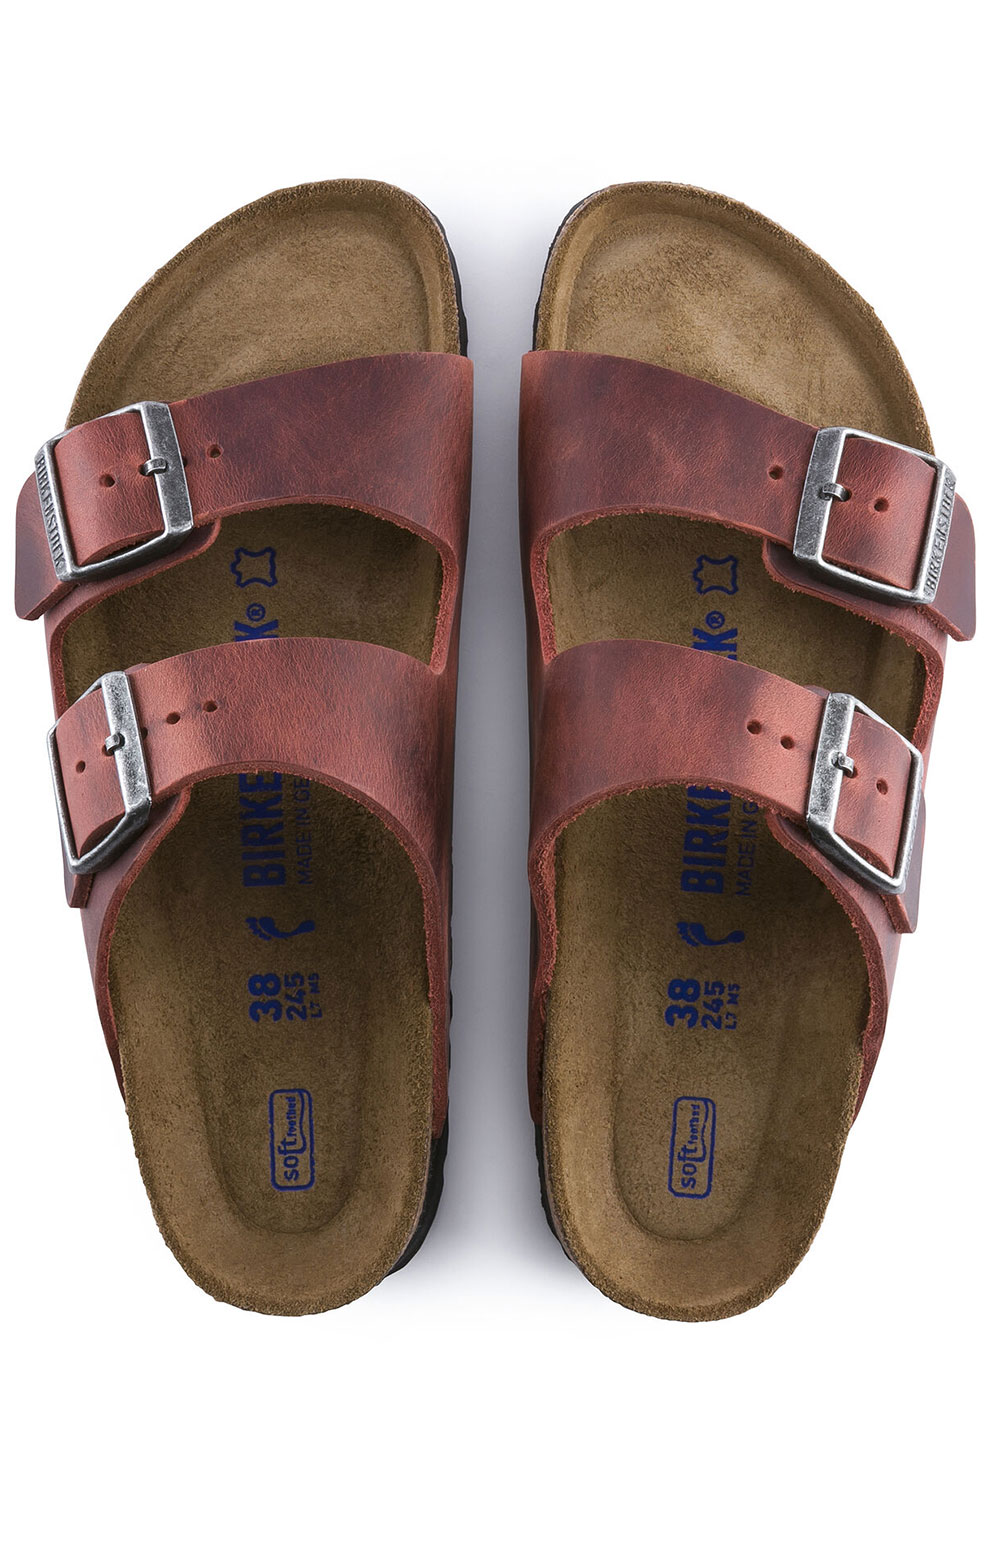 (1015545) Arizona Soft Footbed Sandals - Earth Red 6